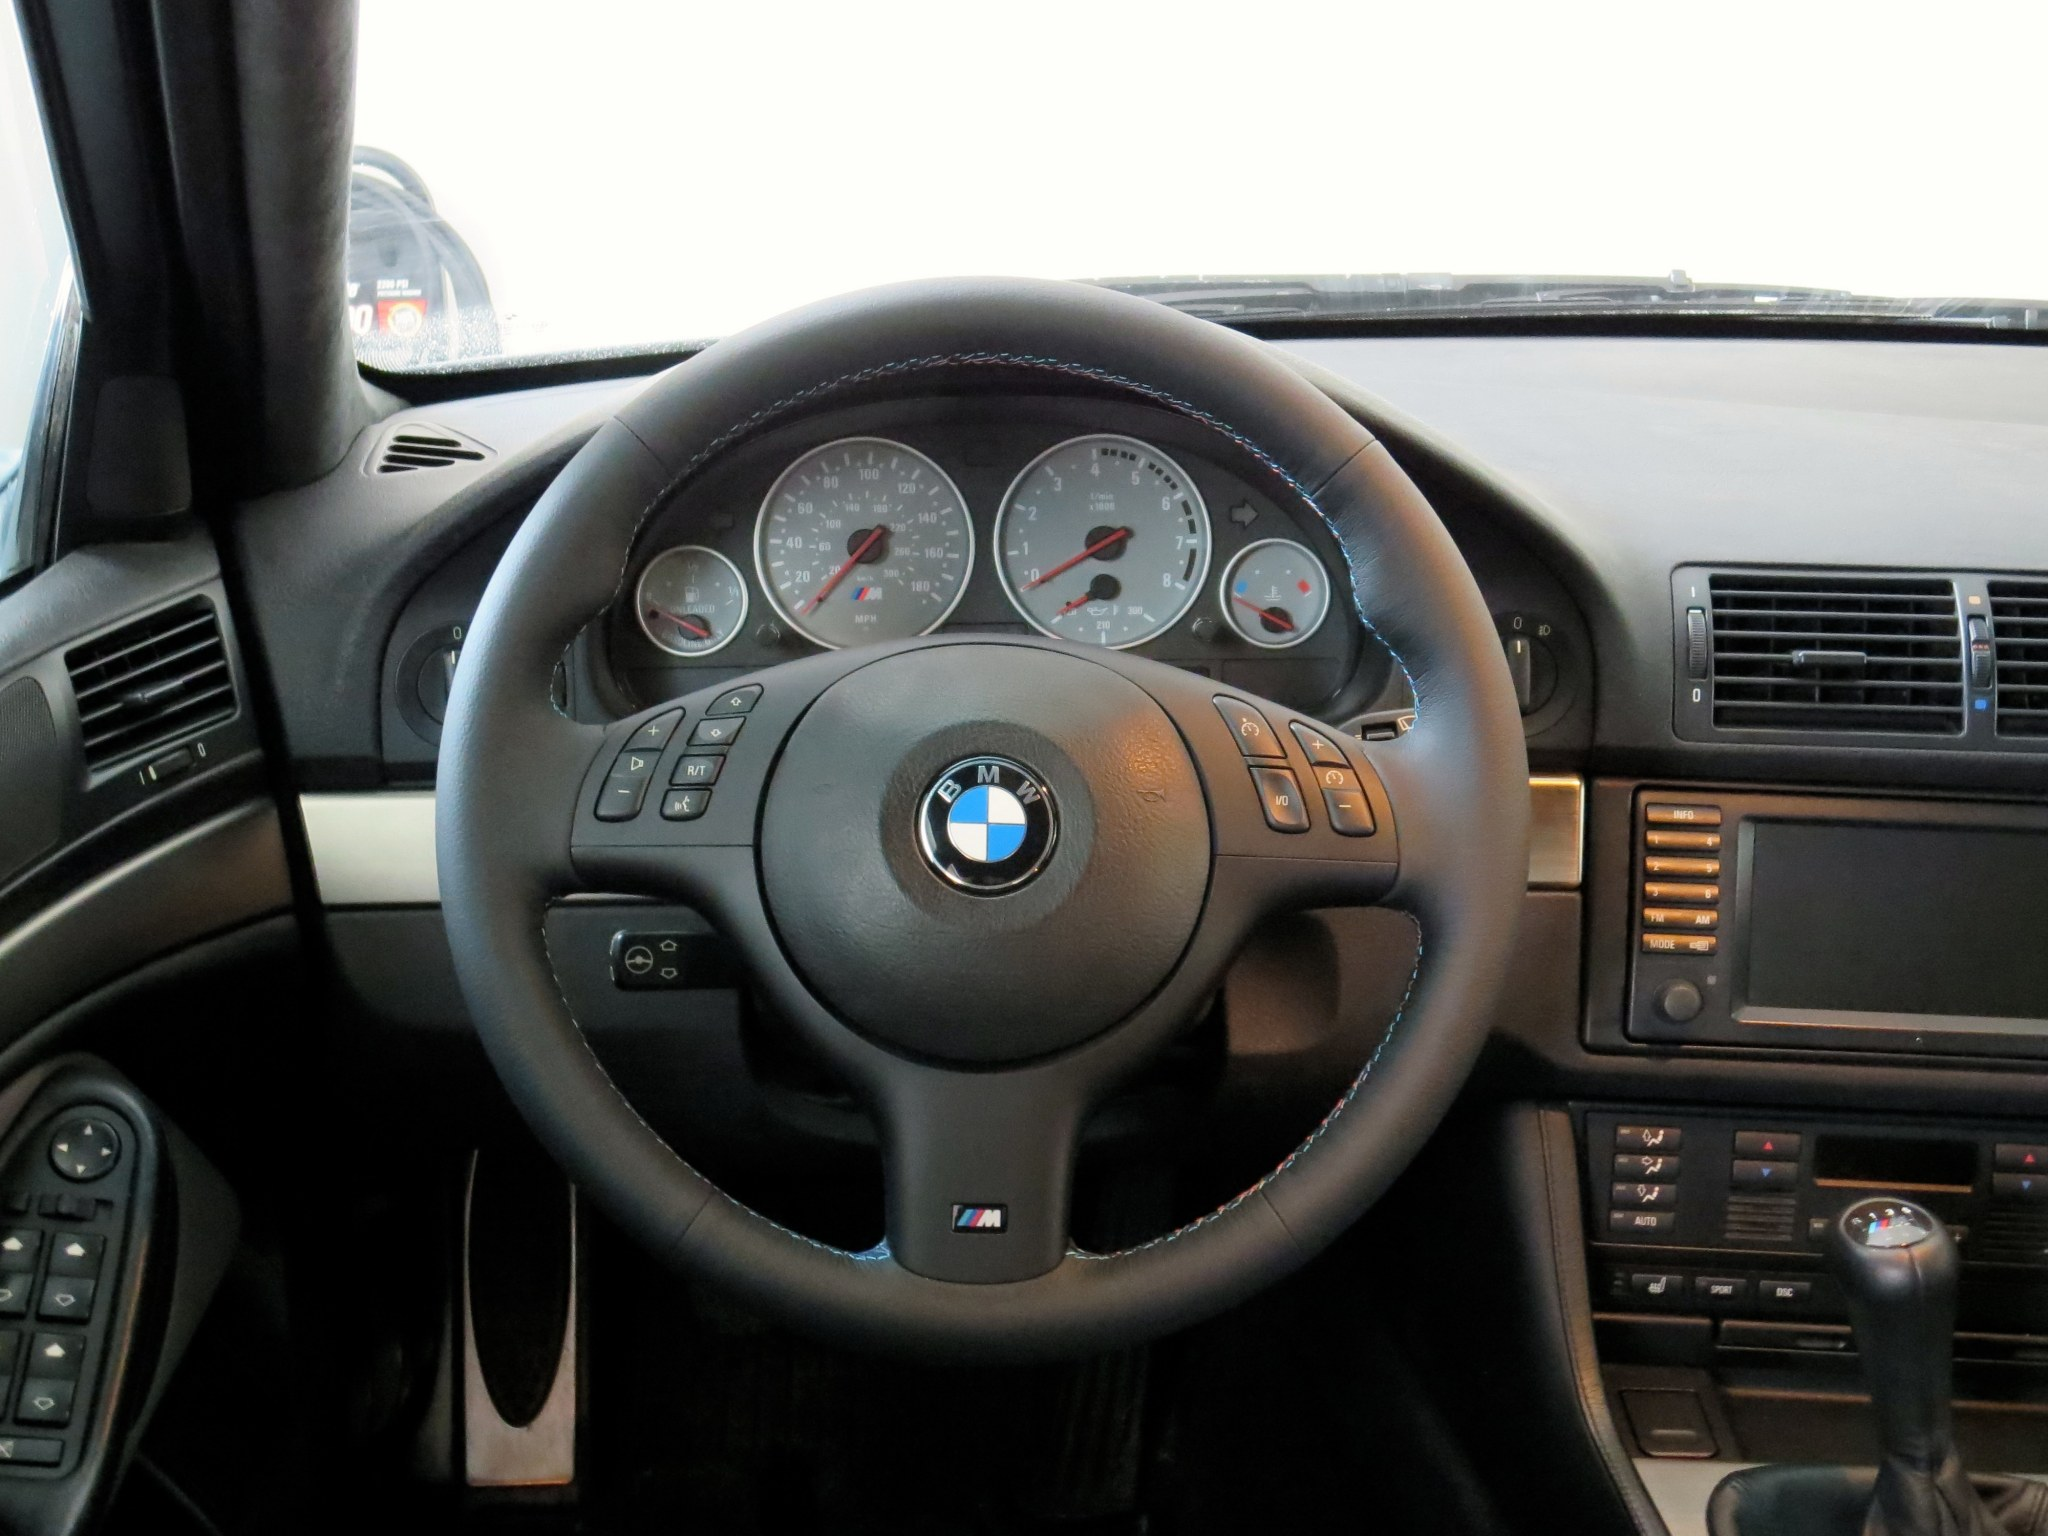 E Facelift BMW ESource - 2006 bmw 540i